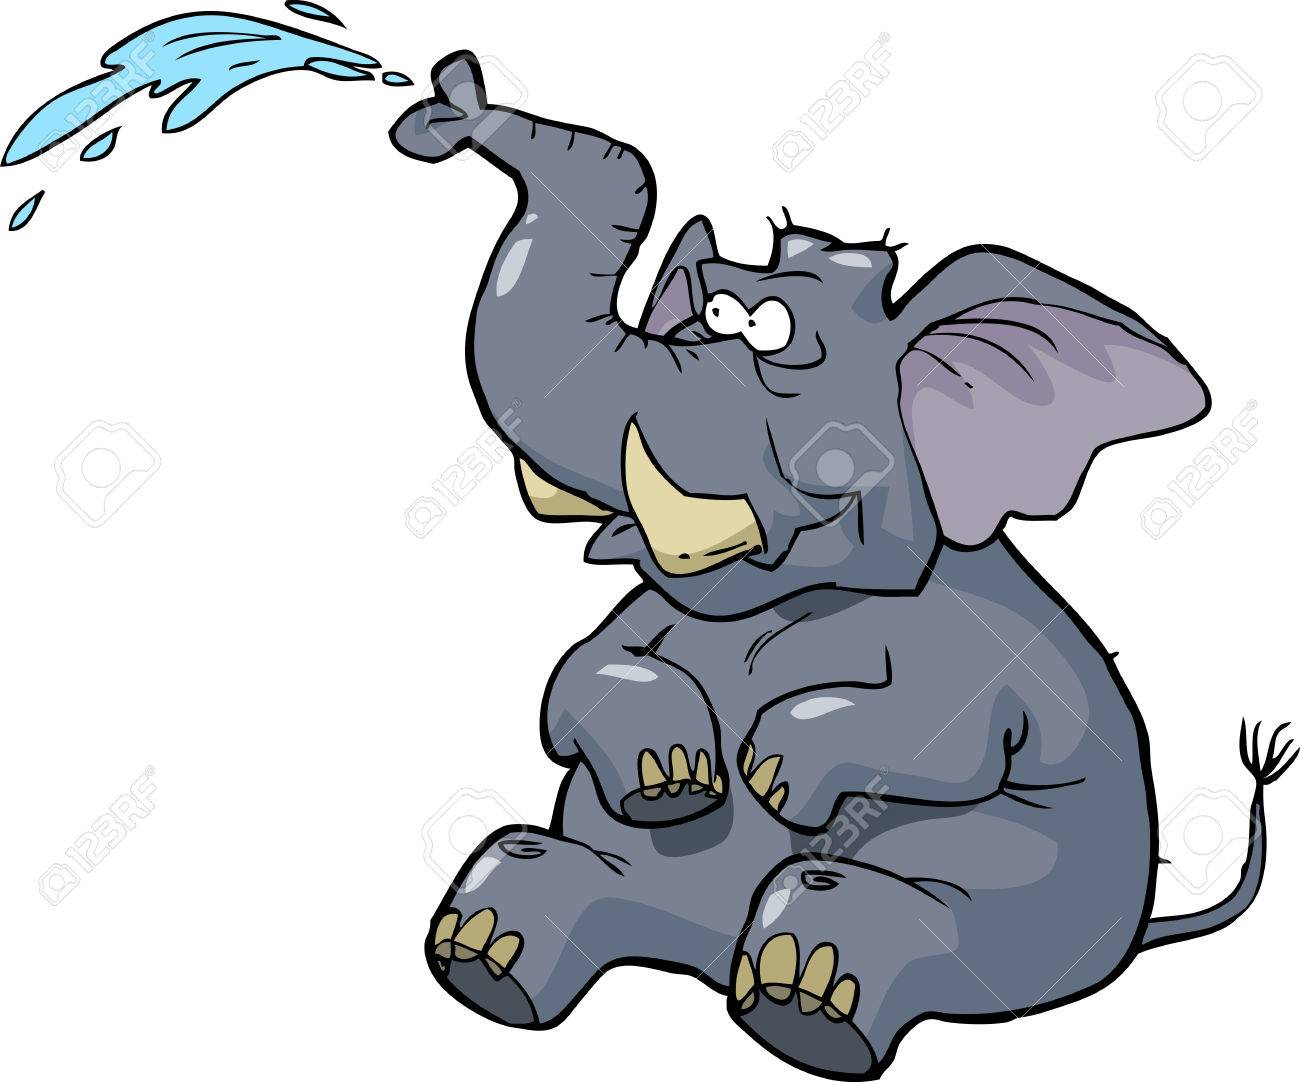 Cartoon elephant squirting water on a white background vector illustration - 52020515